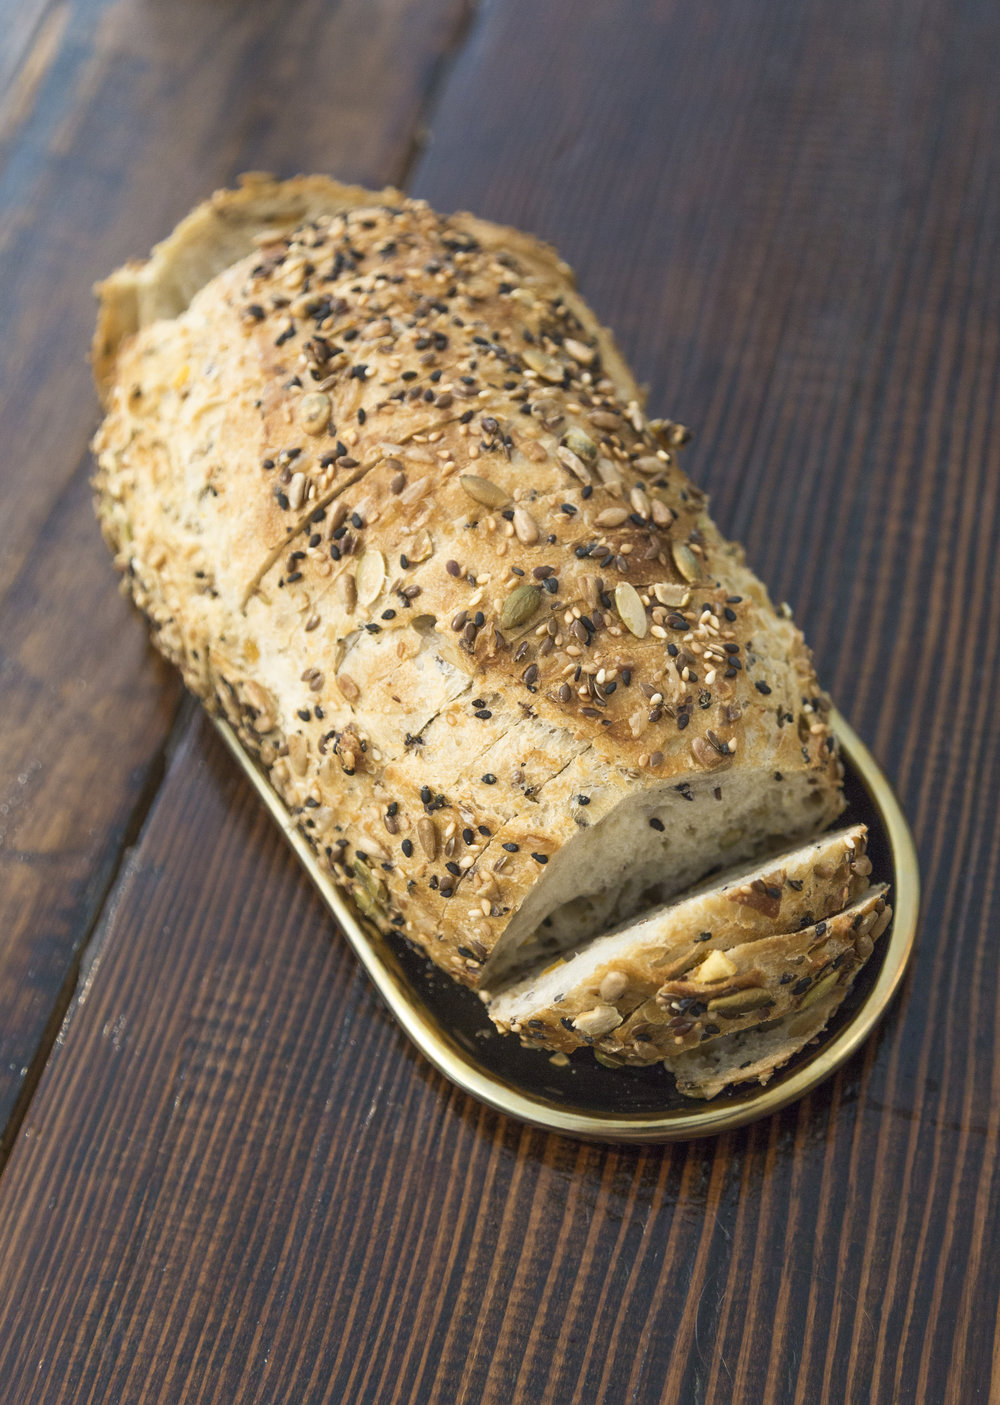 Seven-Grain   French Flour, Almond, Orange Peel, Pumpkin Seed, Sunflower Seed, Flaxseed, Sesame